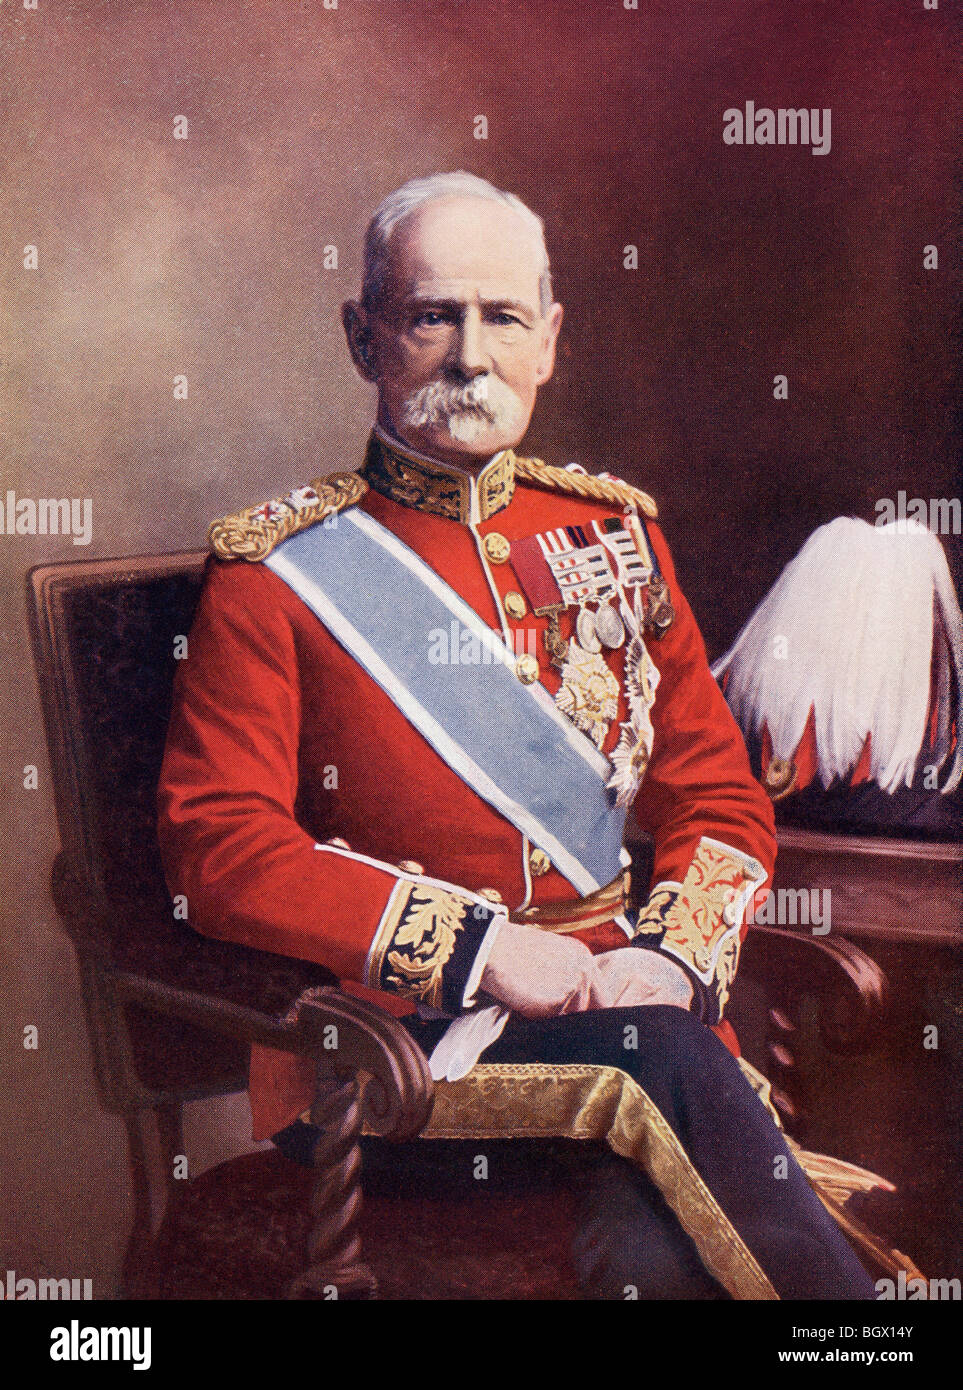 Field Marshal Frederick Sleigh Roberts, 1st Earl Roberts, 1832 to 1914. Anglo-Irish soldier. - Stock Image